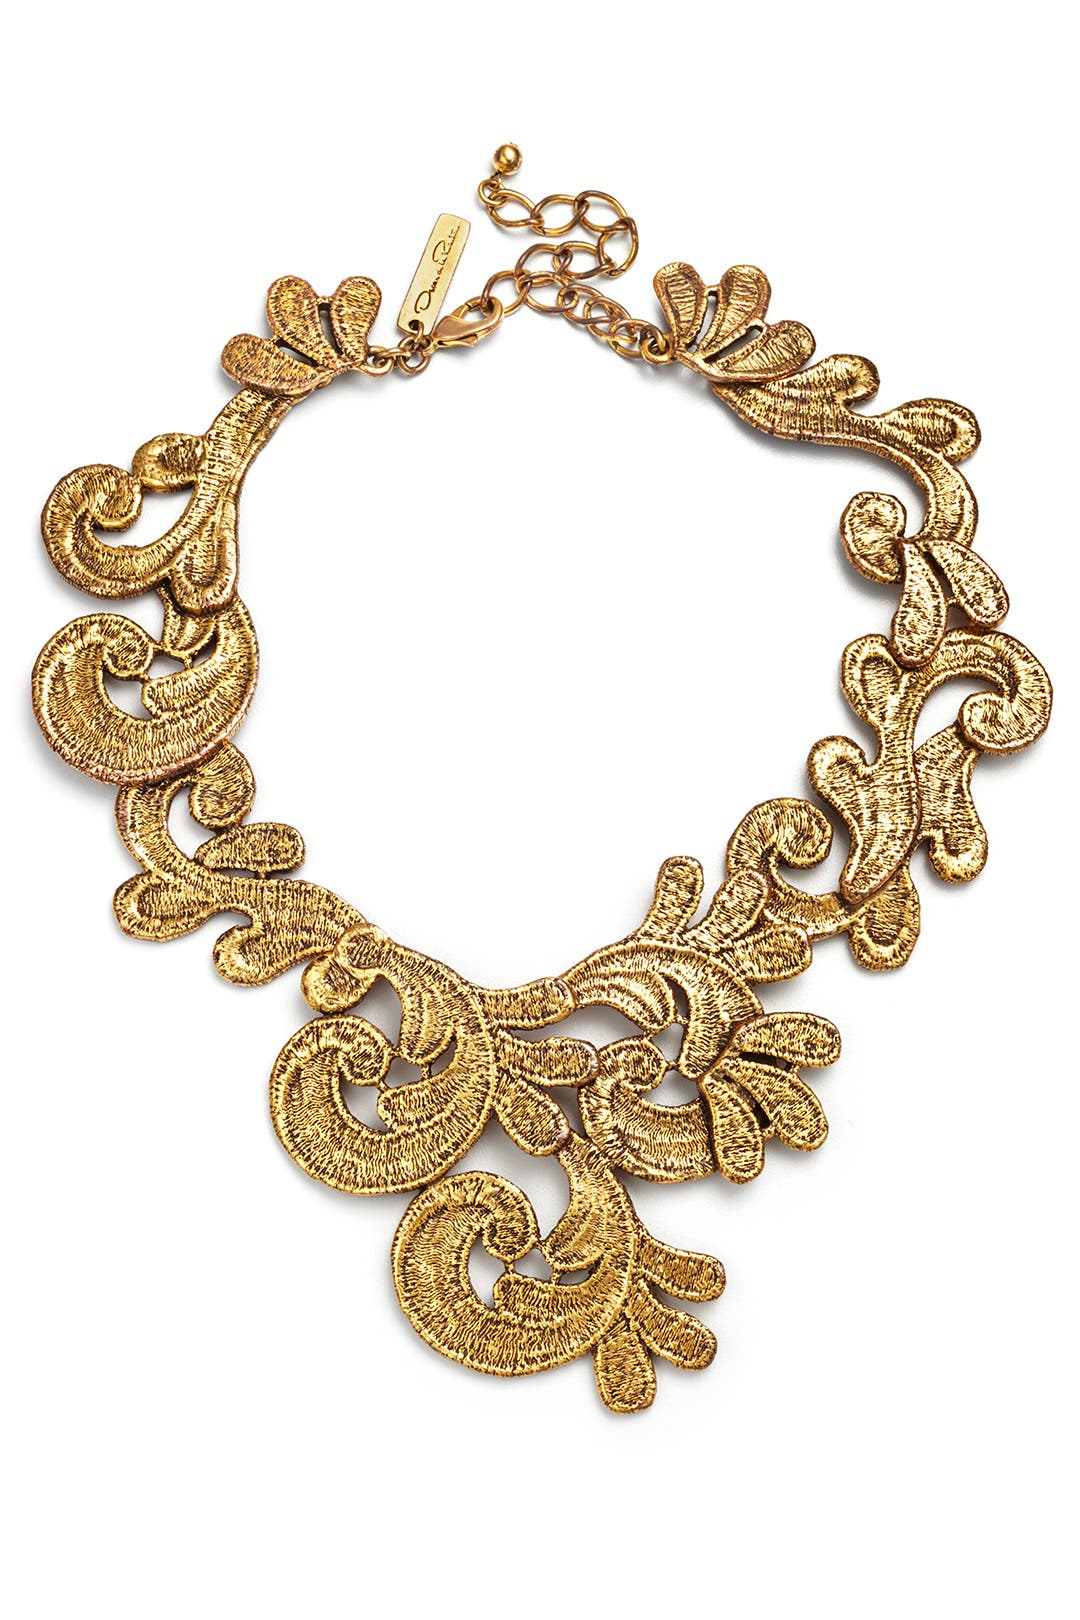 French Quarter Jazz Necklace by Oscar de la Renta